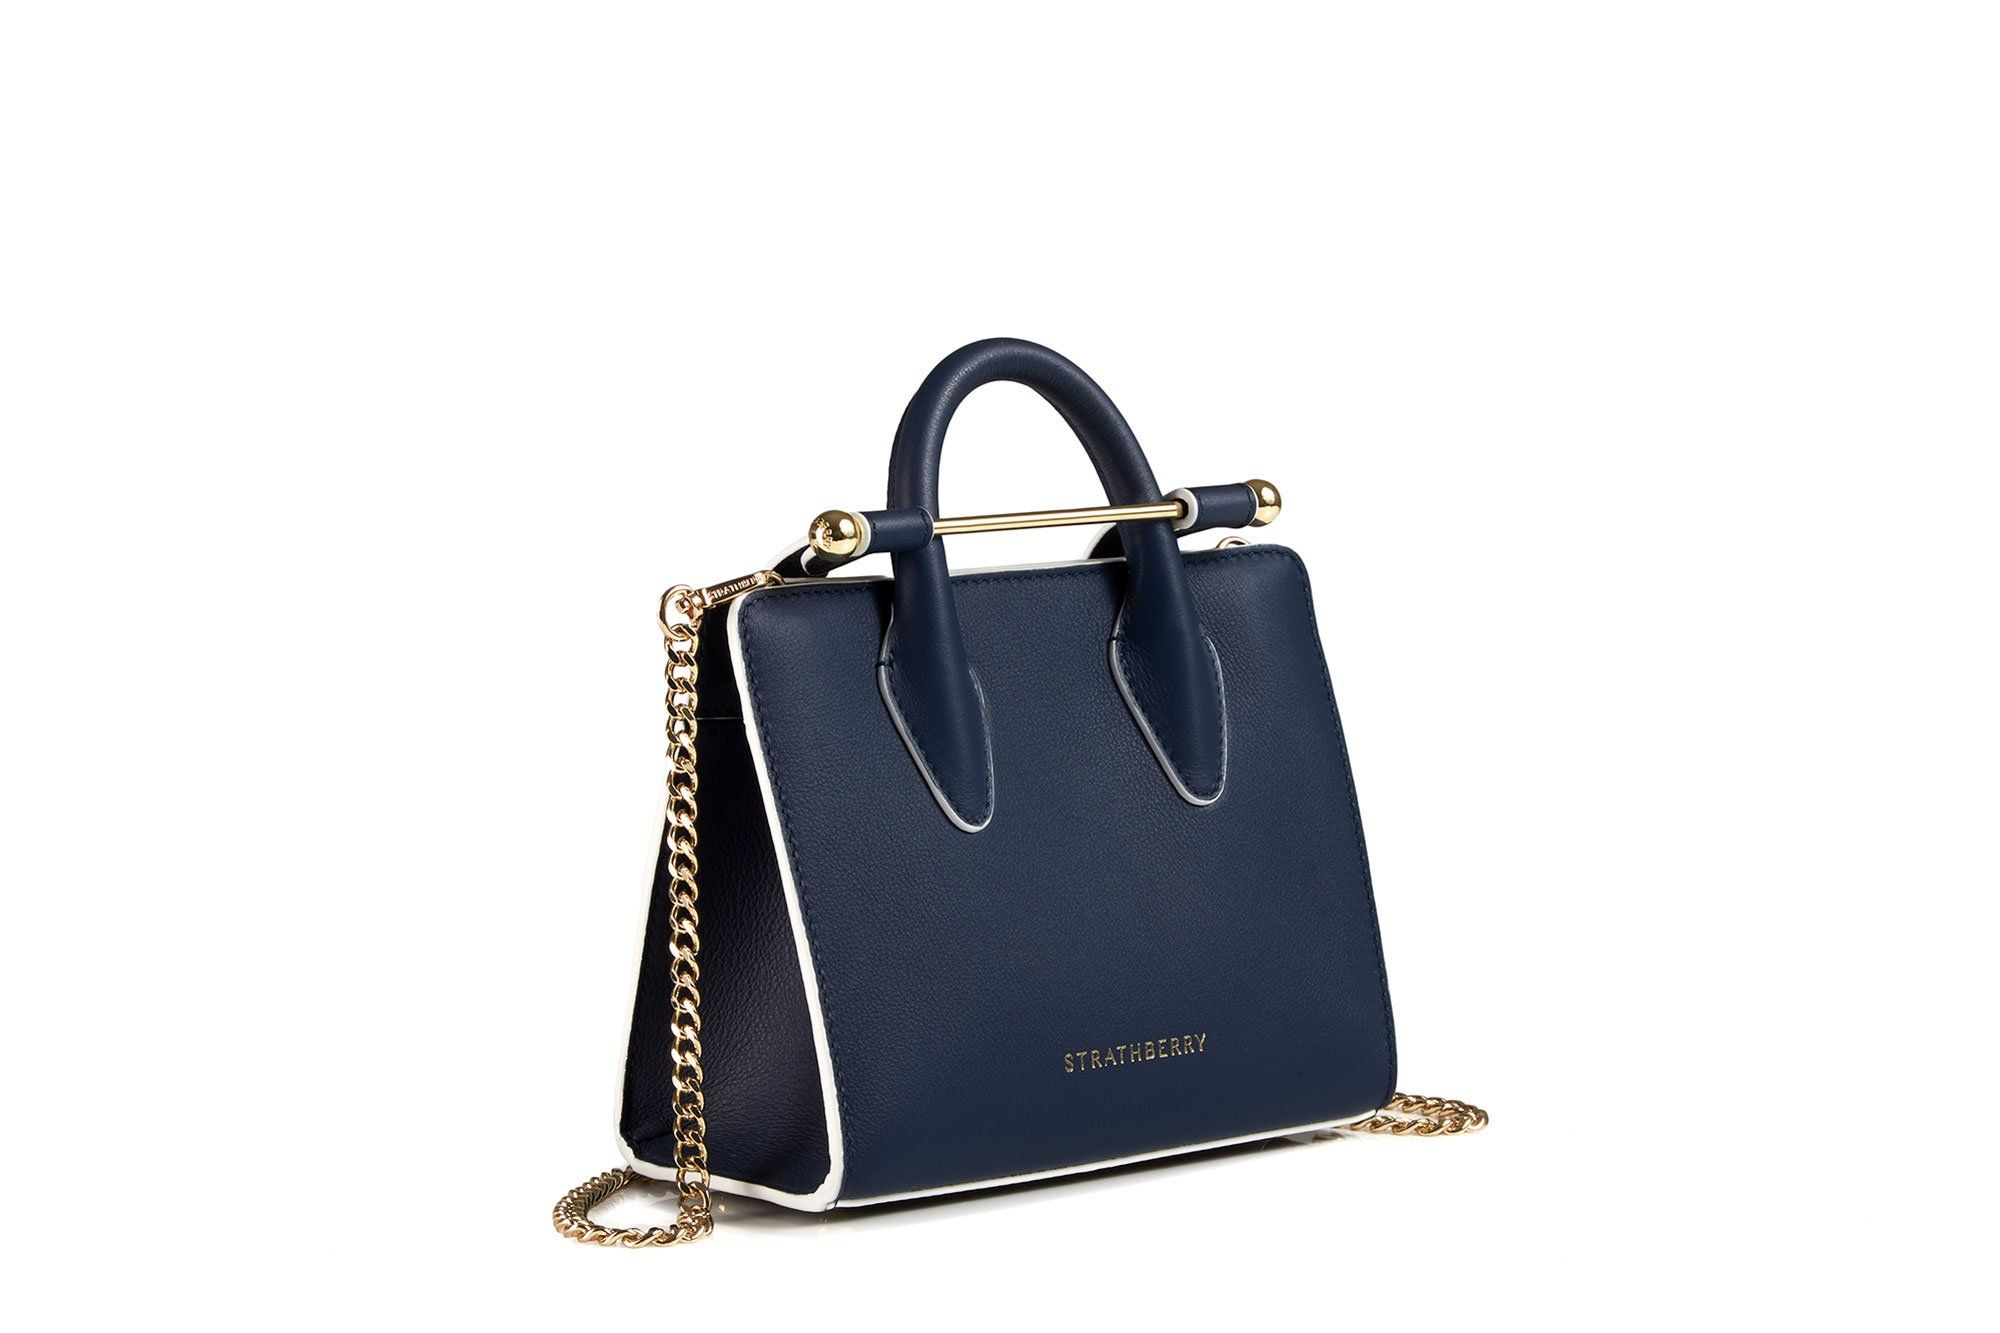 b382e9f31228 STRATHBERRY THE STRATHBERRY NANO TOTE - NAVY WITH EDGE.  strathberry  bags   shoulder bags  hand bags  suede  tote  lining